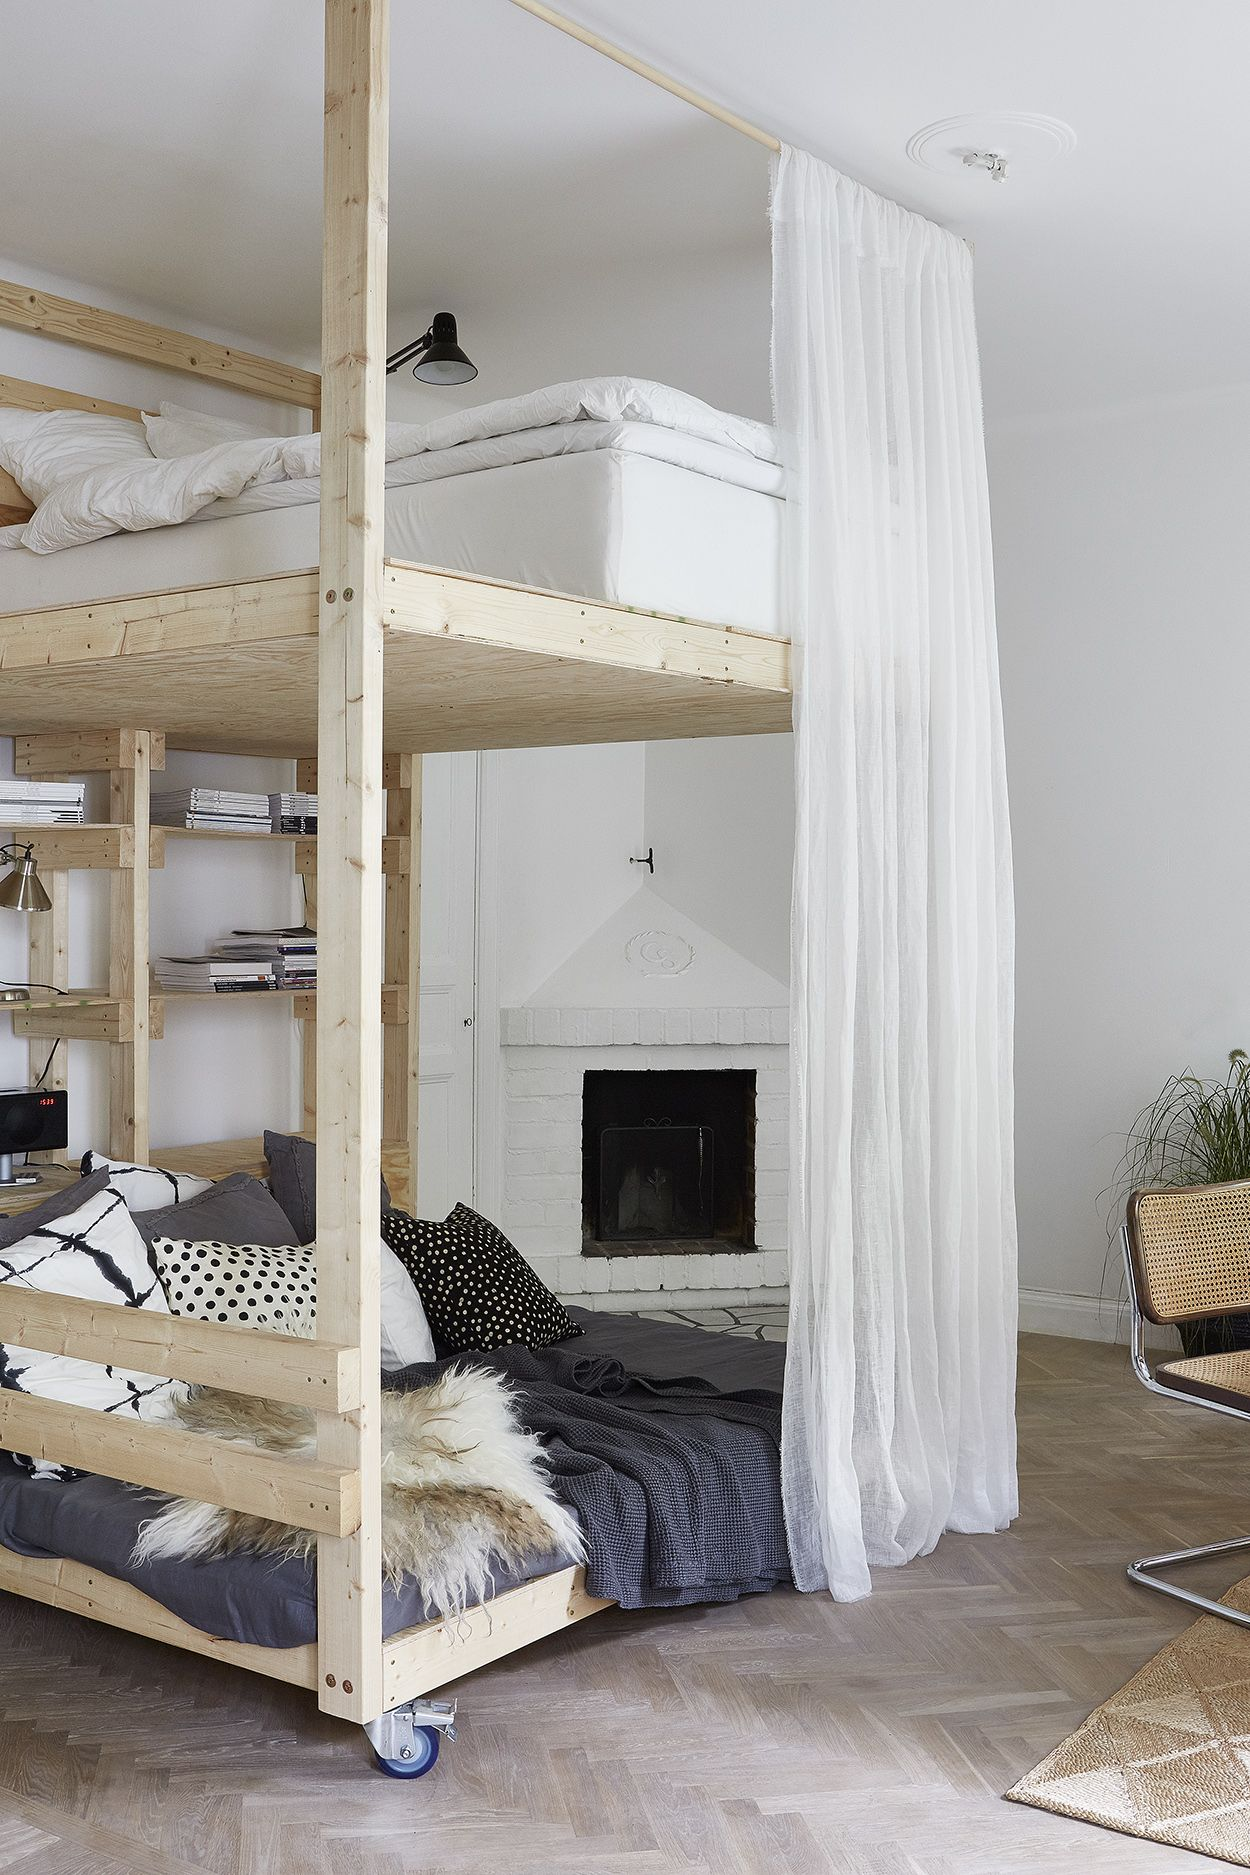 Charming DIY Loft Bed With Lounge Space Underneath. Itu0027s On Wheels So Easily Moved